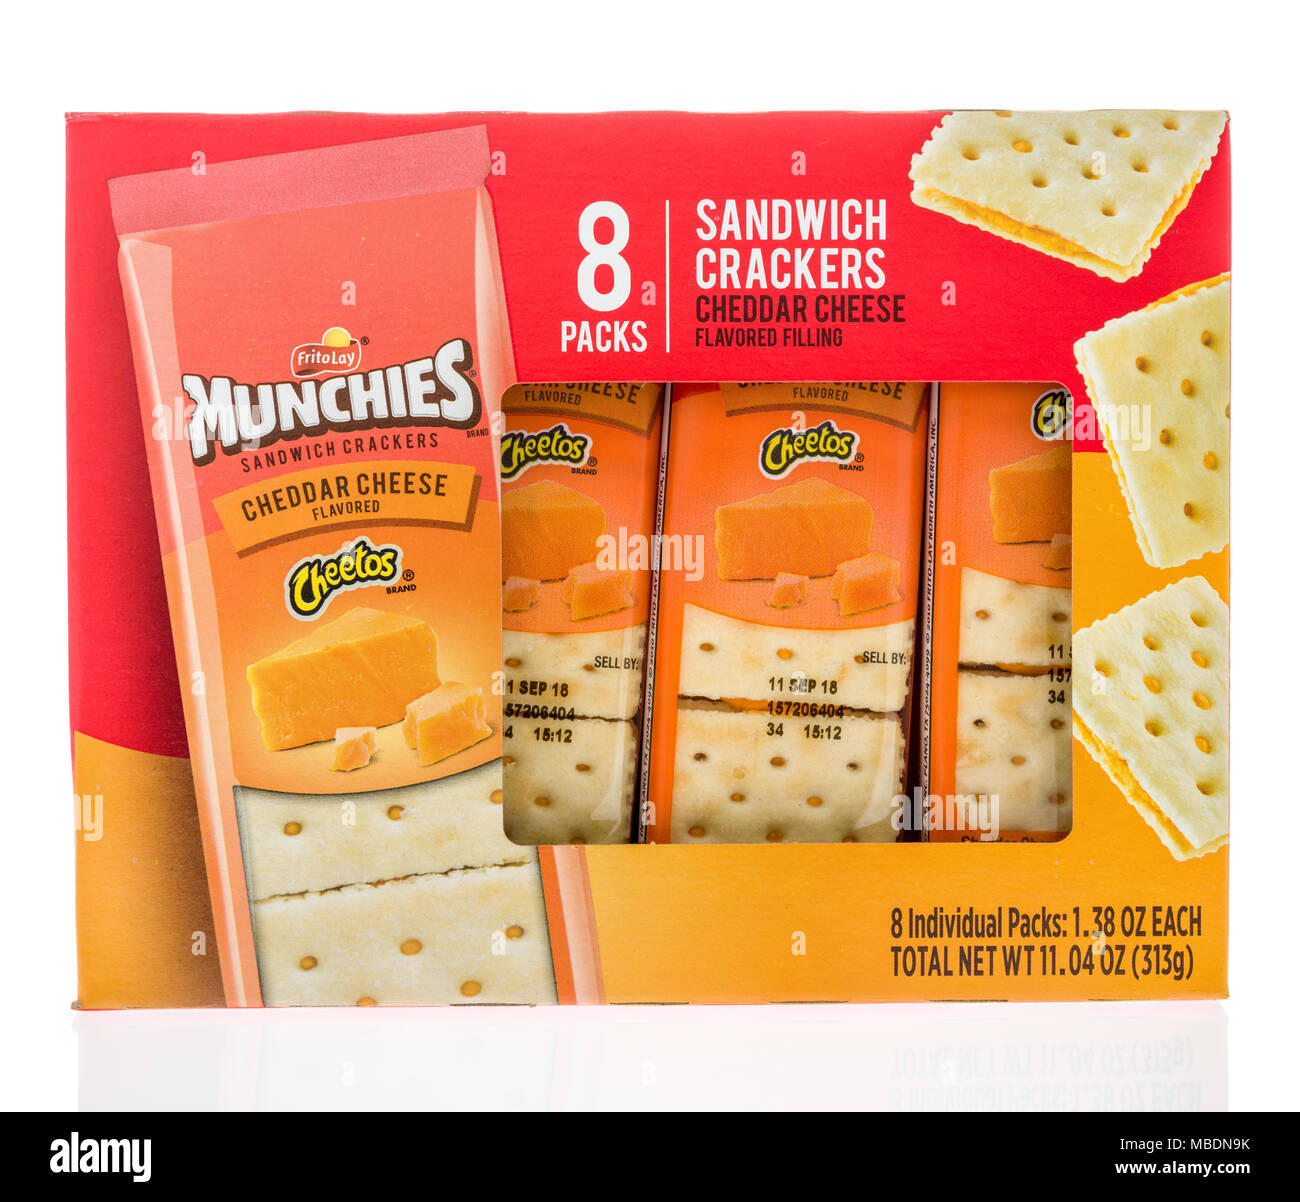 https://c8.alamy.com/comp/MBDN9K/winneconne-wi-7-april-2018-a-box-of-munchies-sandwich-crackers-in-cheetos-cheddar-cheese-flavor-on-an-isolated-background-MBDN9K.jpg